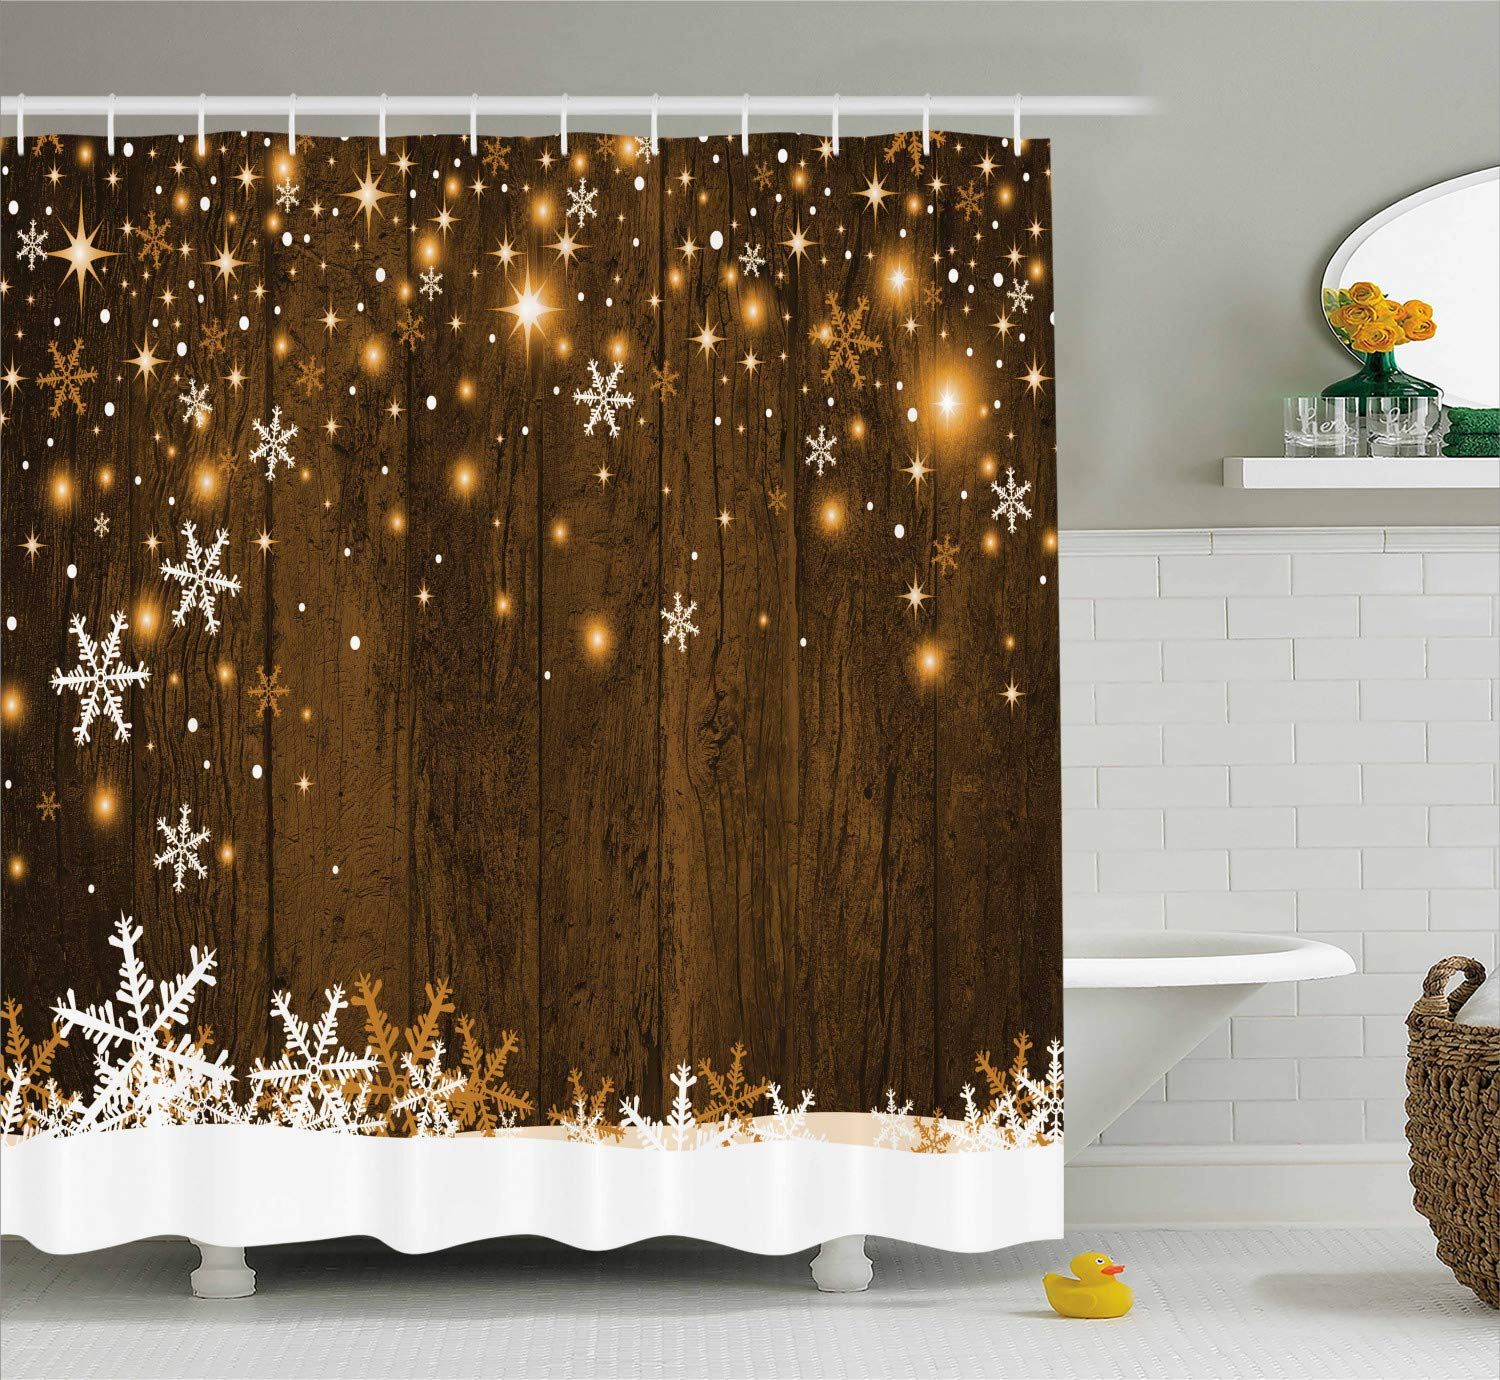 Ambesonne Christmas Decorations Shower Curtain Set Rustic Wooden Backdrop With Snowflakes And Lights Warm Xmas Celebration Themed Bathroom Accessories